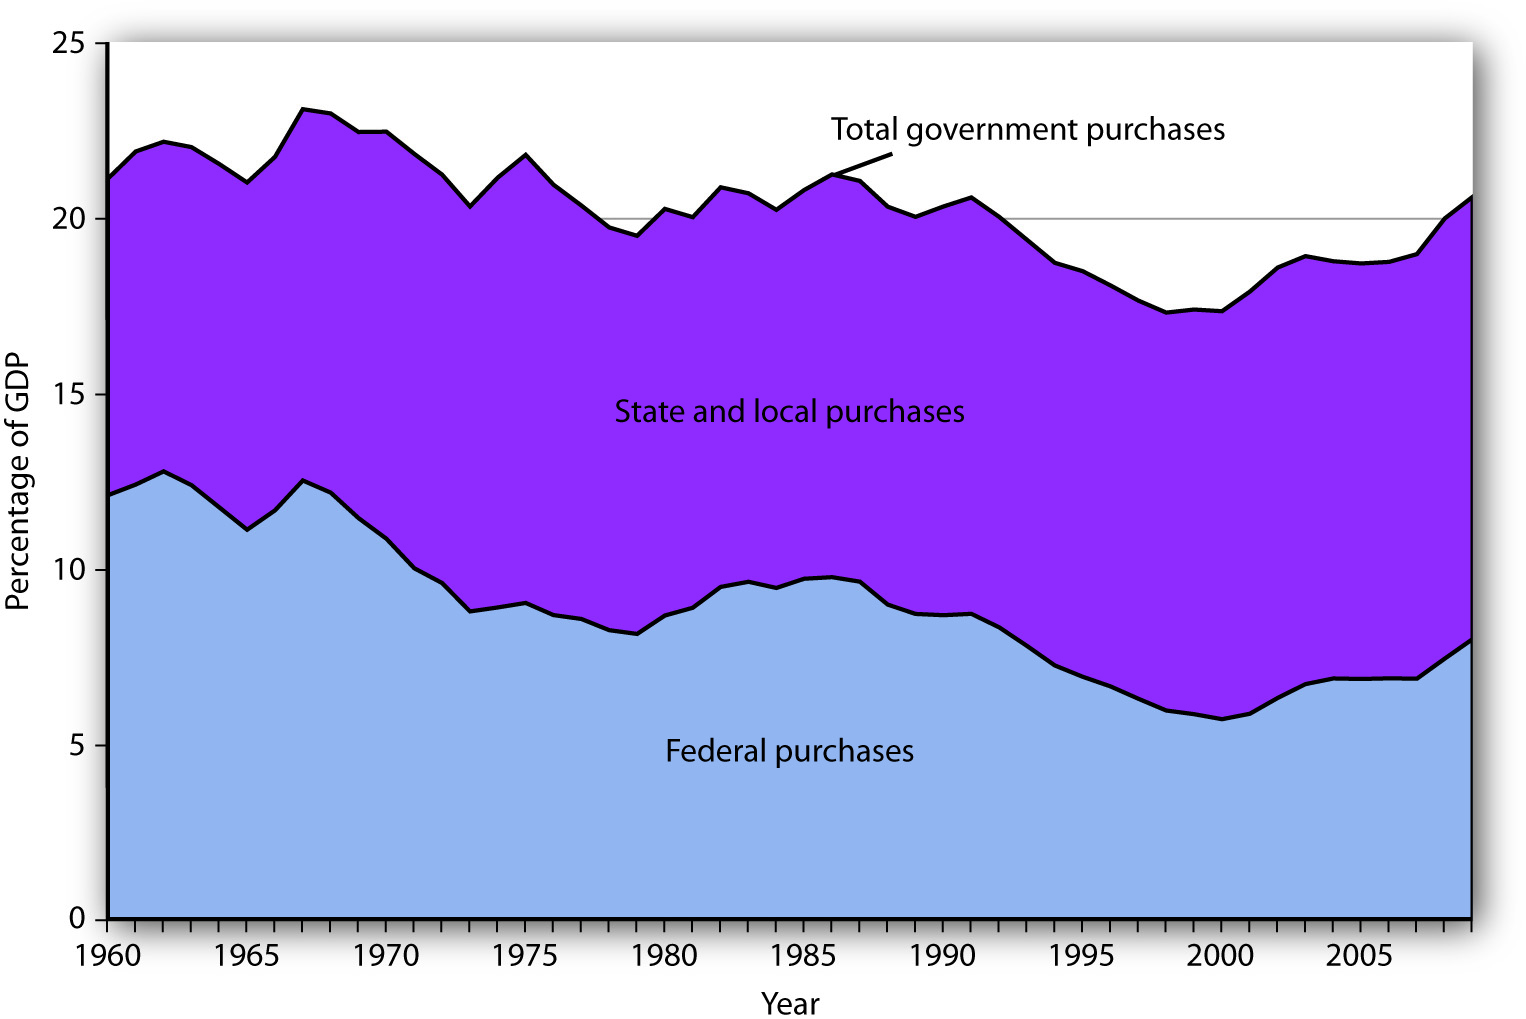 Federal, State, and Local Purchases Relative to GDP. Government purchases were generally above 20% of GDP from 1960 until the early 1990s and then below 20% of GDP until the 2007-2009 recession. The share of government purchases in GDP began rising again in the 21st century.